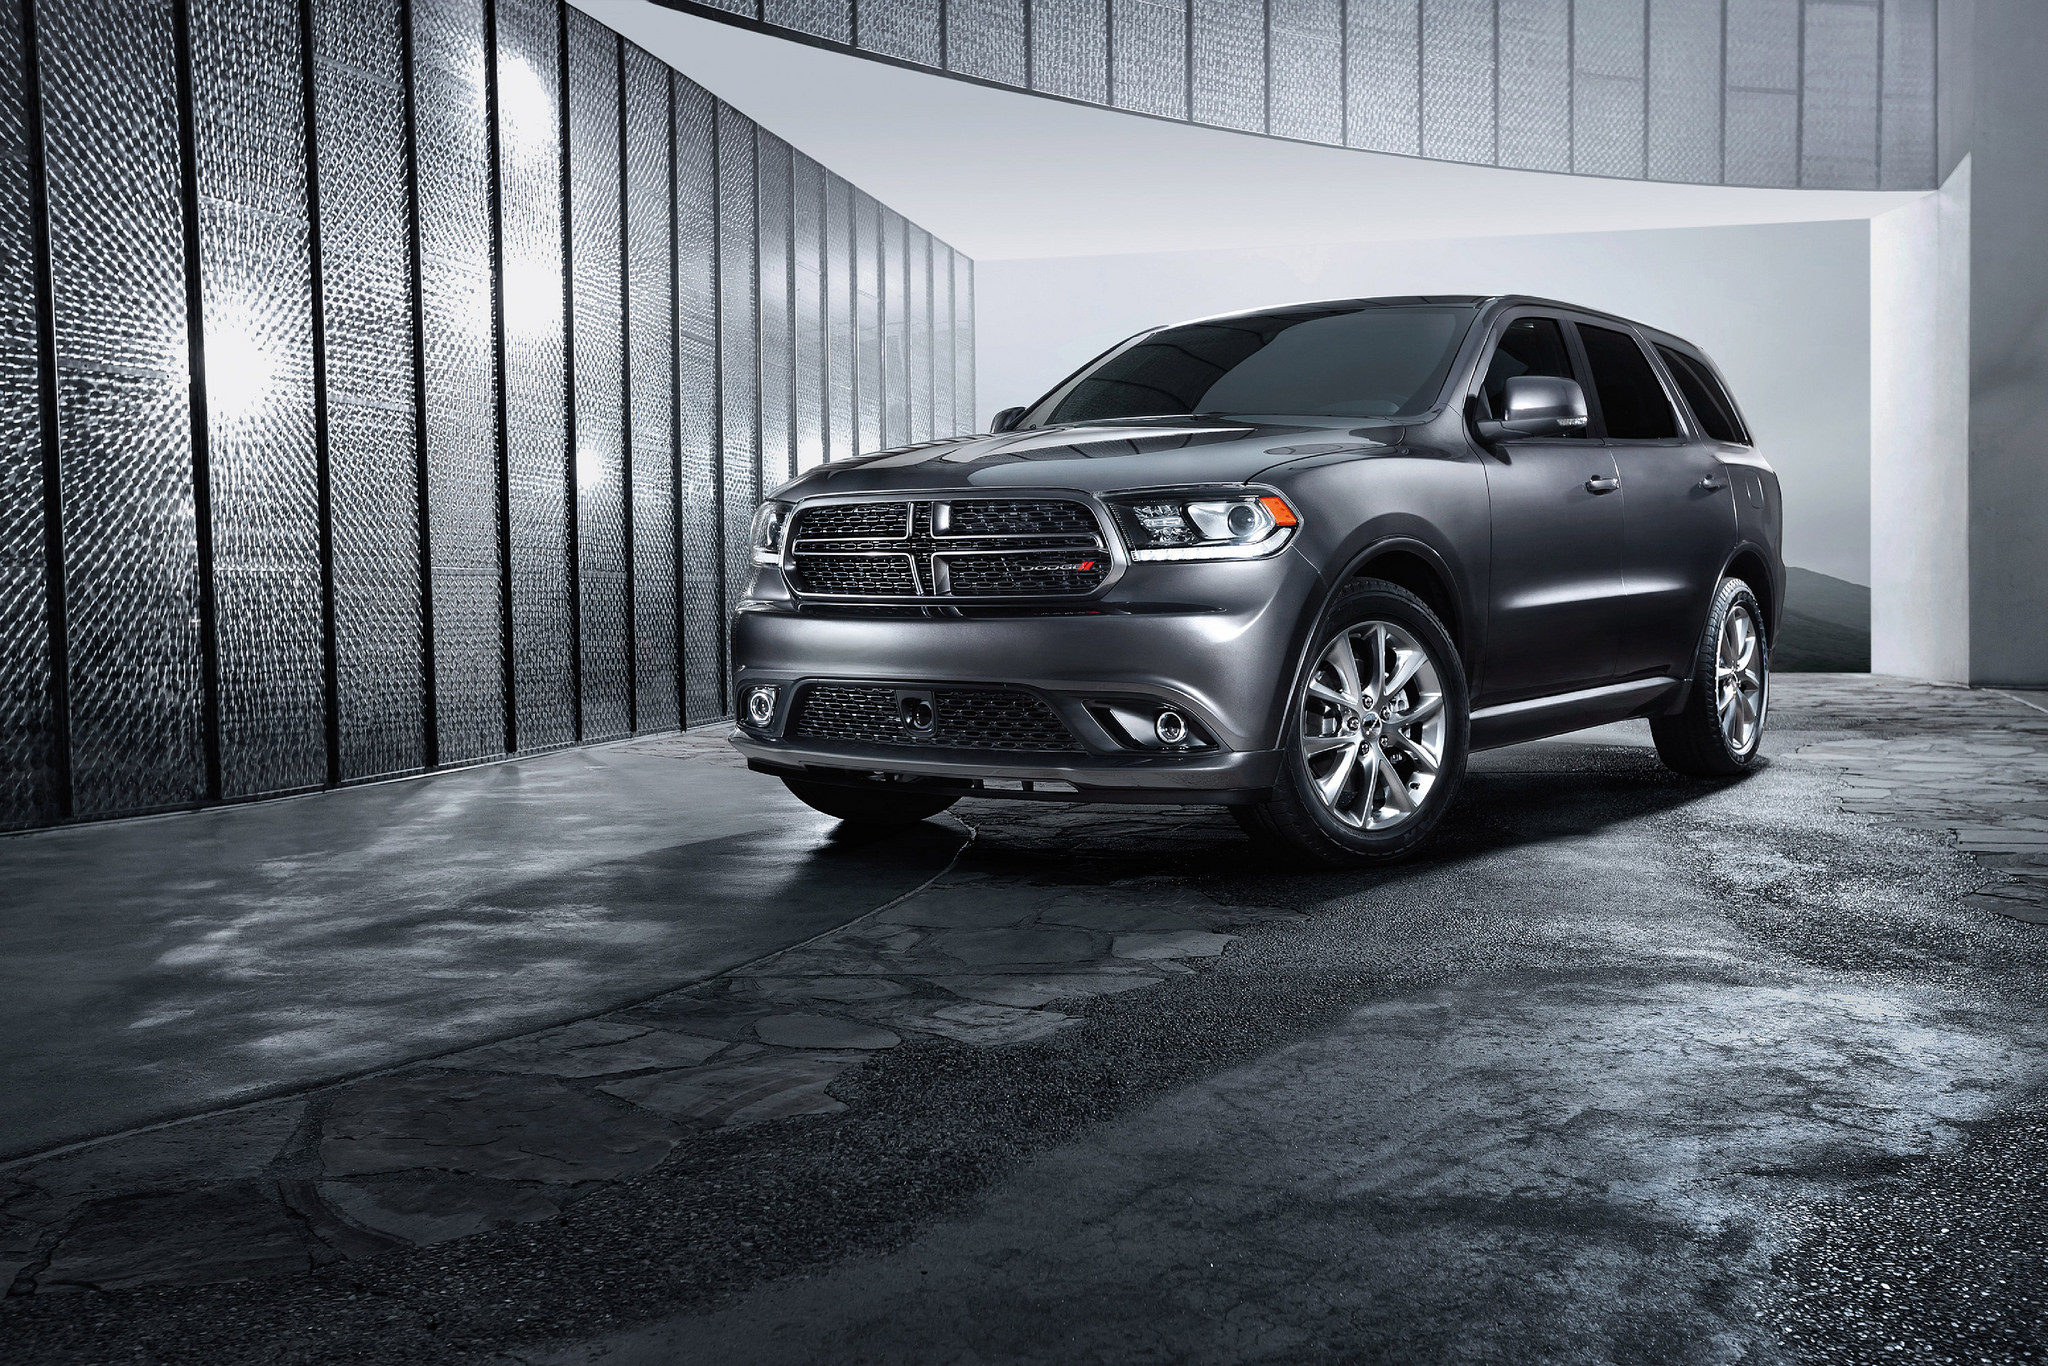 2018 Dodge Durango Takes Home Best Buy Award The News Wheel